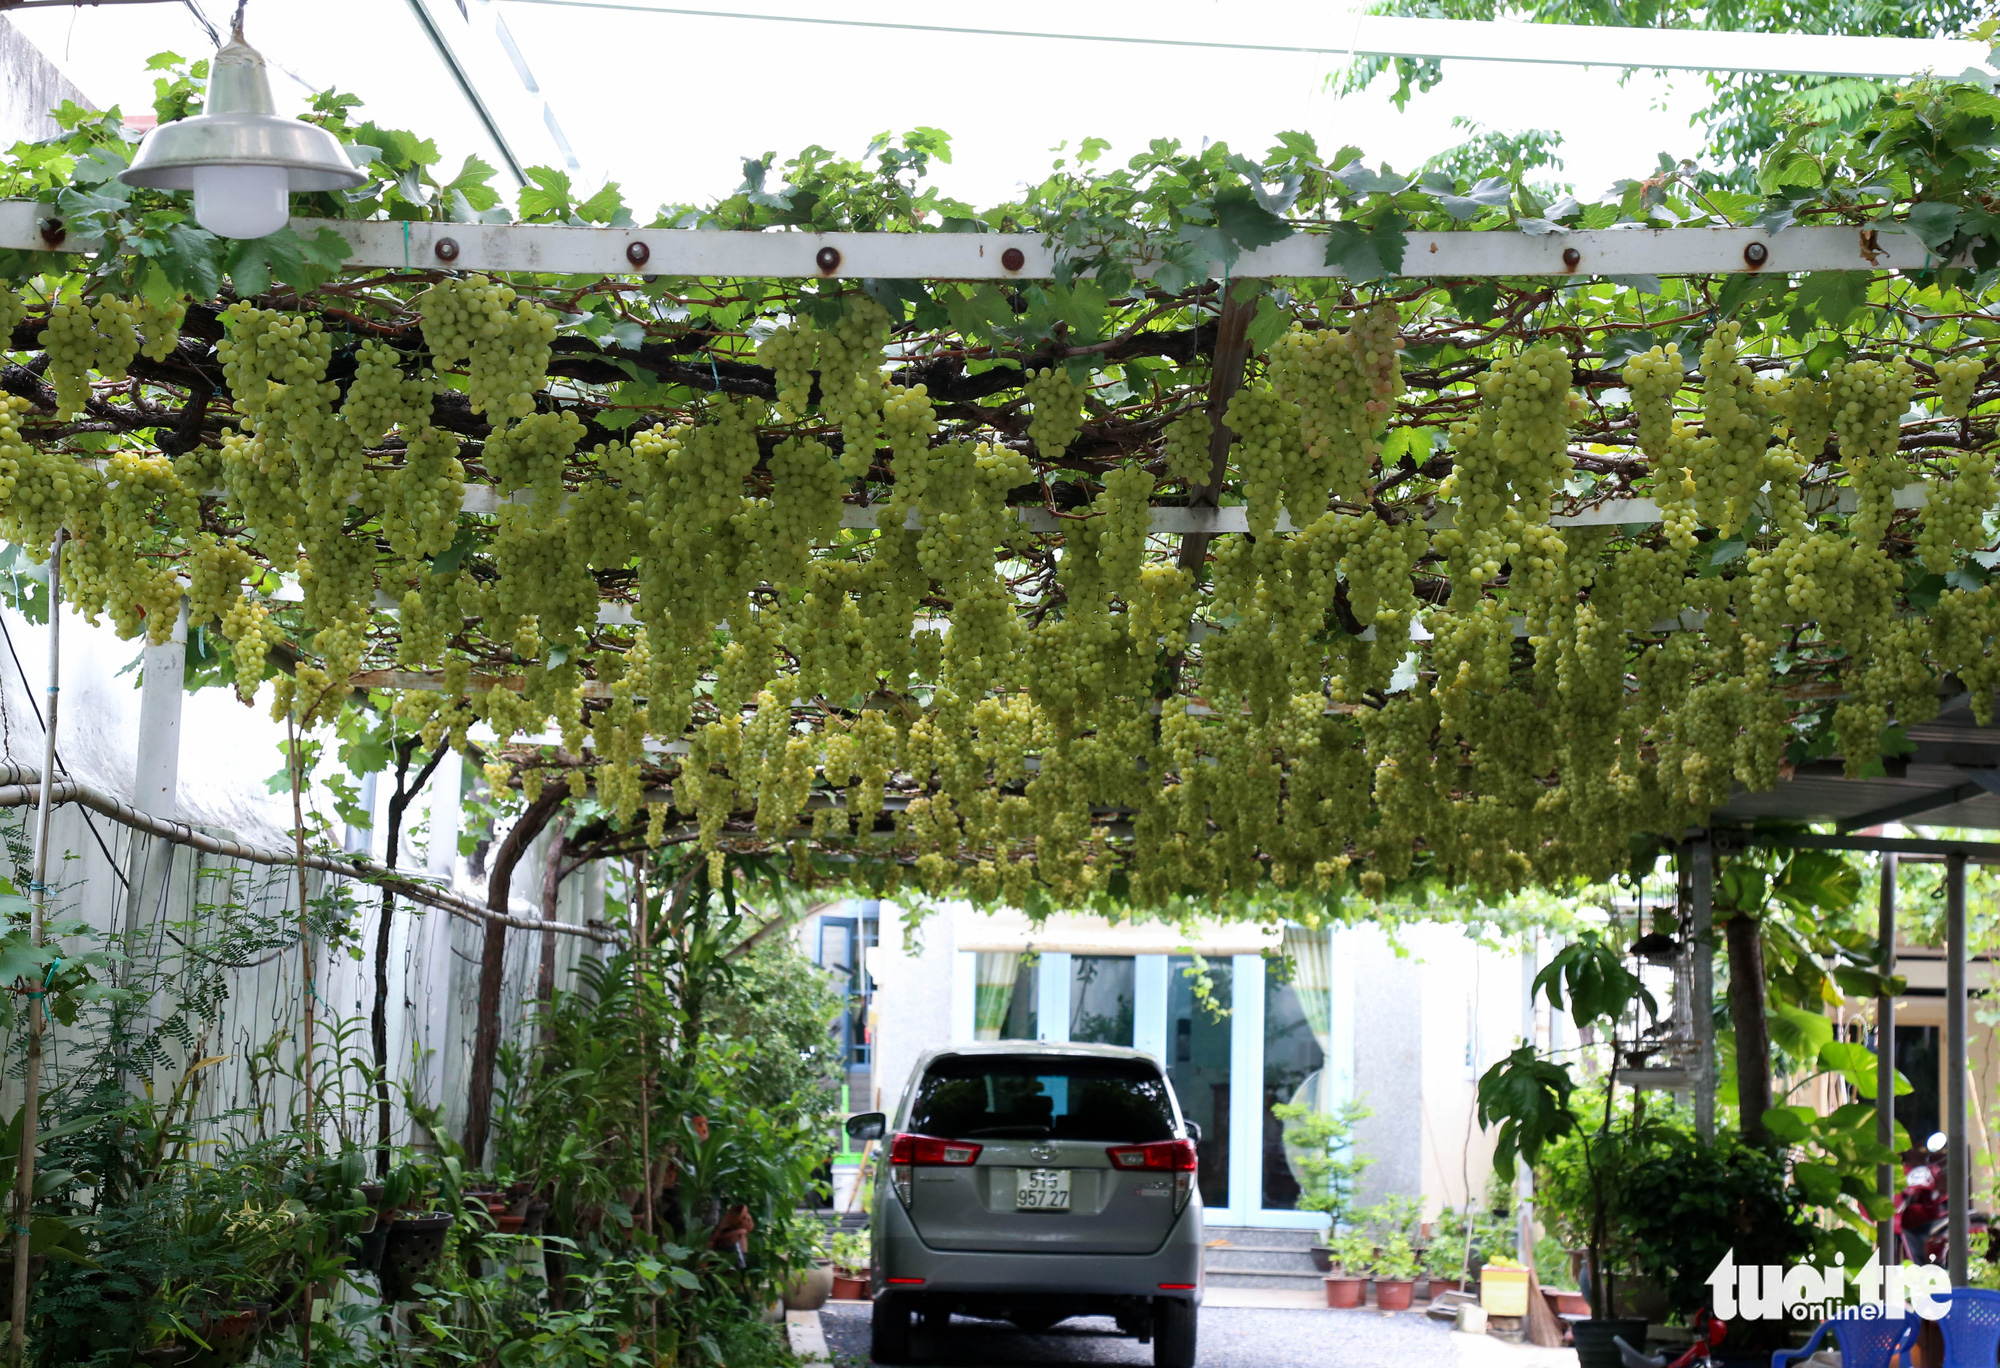 Grapevines are grown at Truong Van O's home garden in District 9, Ho Chi Minh City, Vietnam. Photo: Thao Le / Tuoi Tre